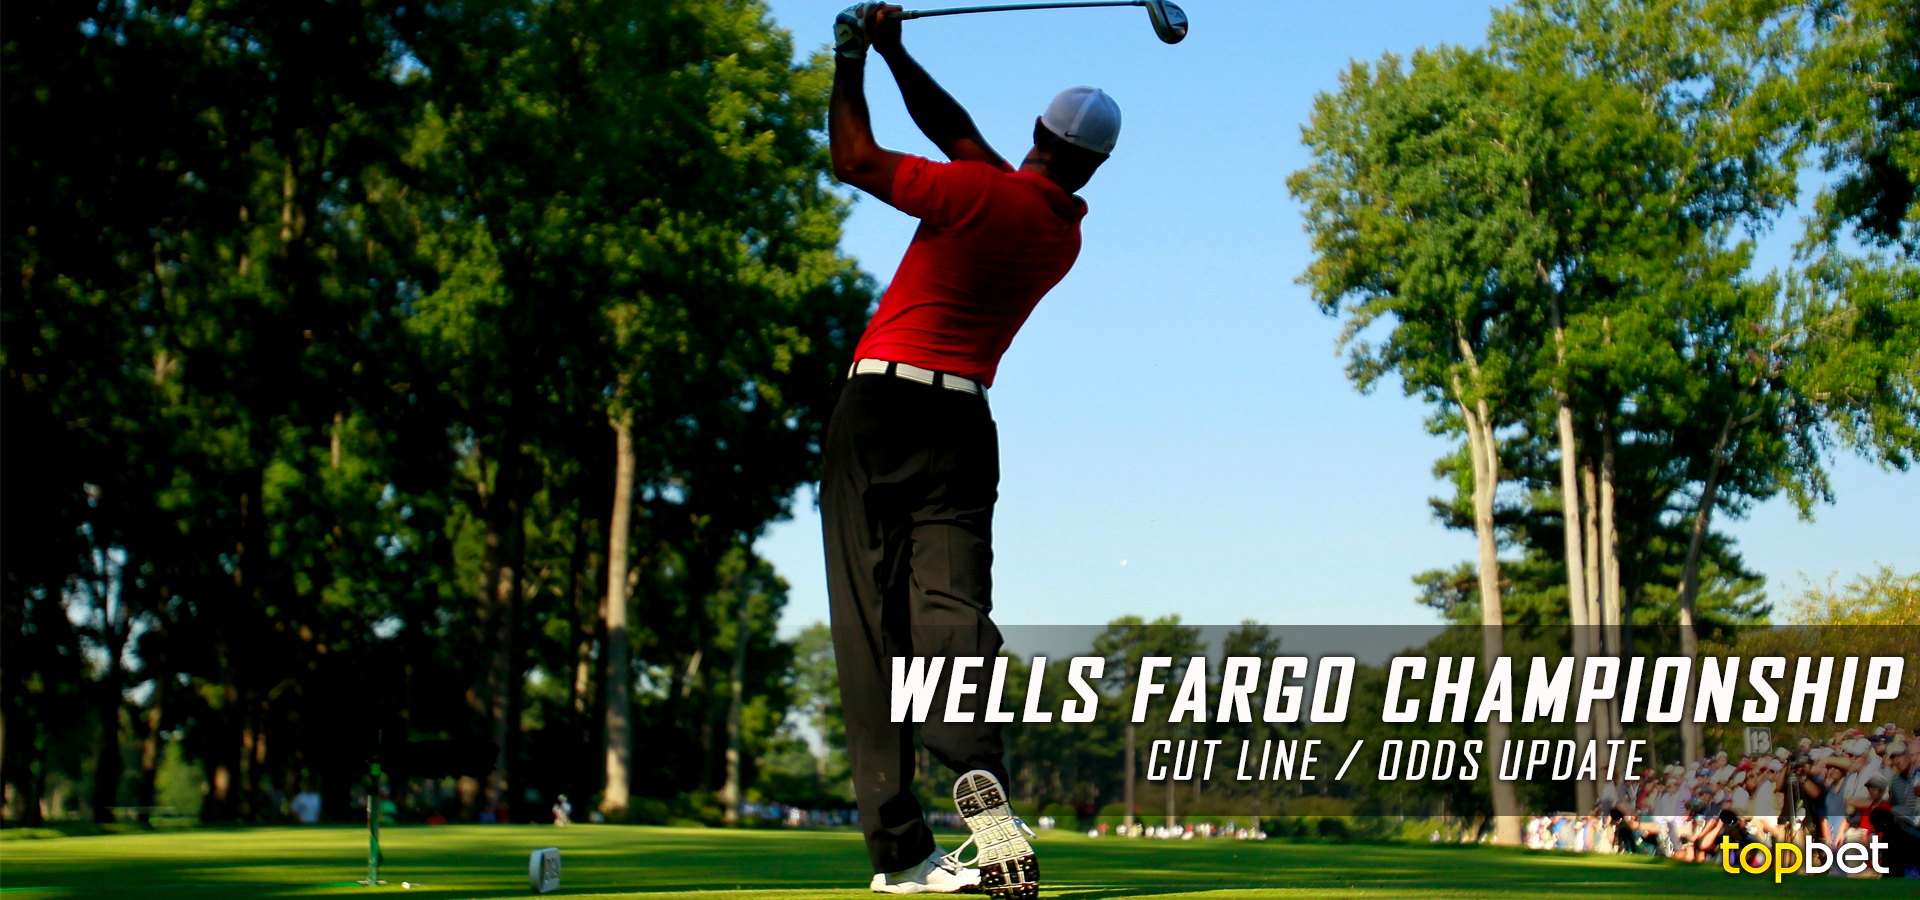 2016 Pga Wells Fargo Championship Cut Line And Odds Update